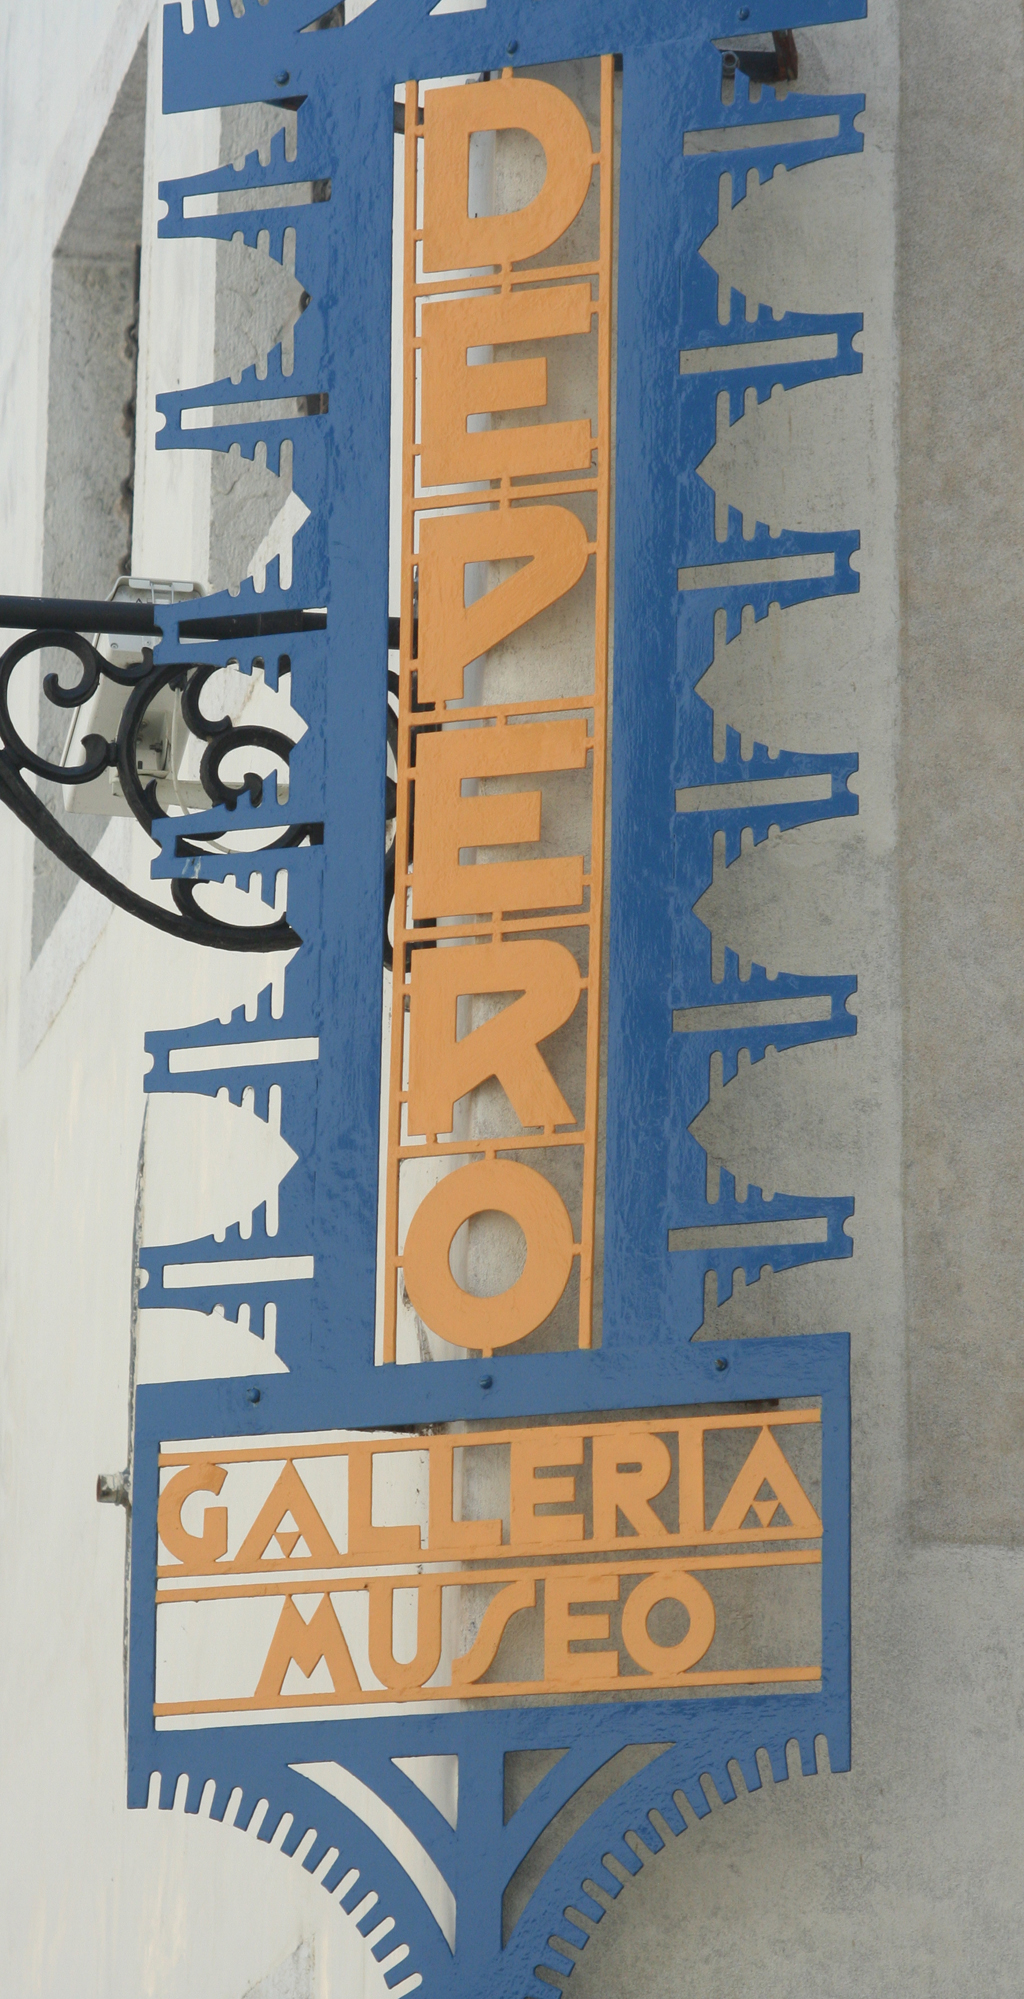 Sign for the Depero Galleria e Museo. Photograph by Paul Shaw 2011.